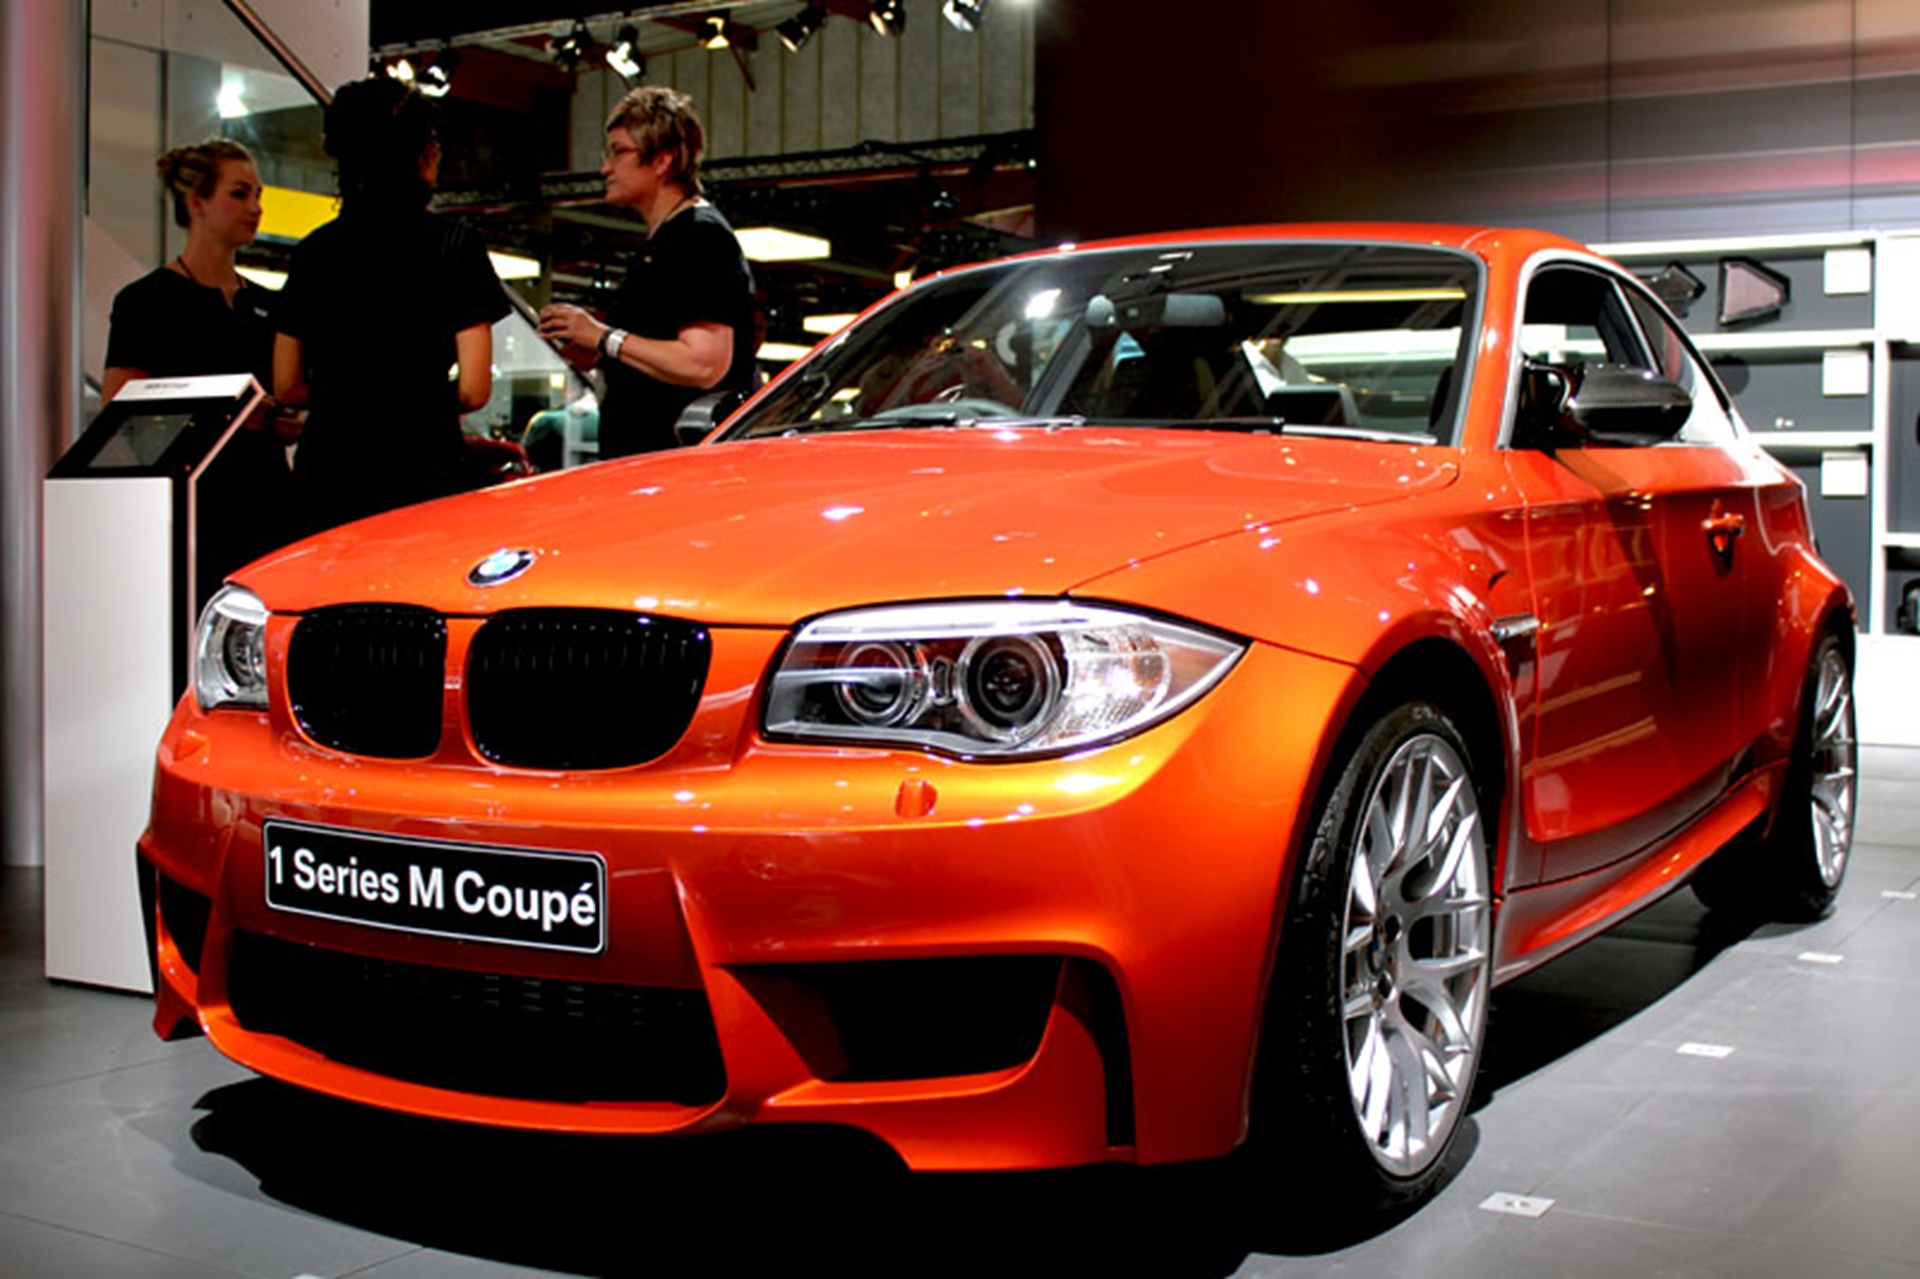 BMW 1 Series M-Coupe